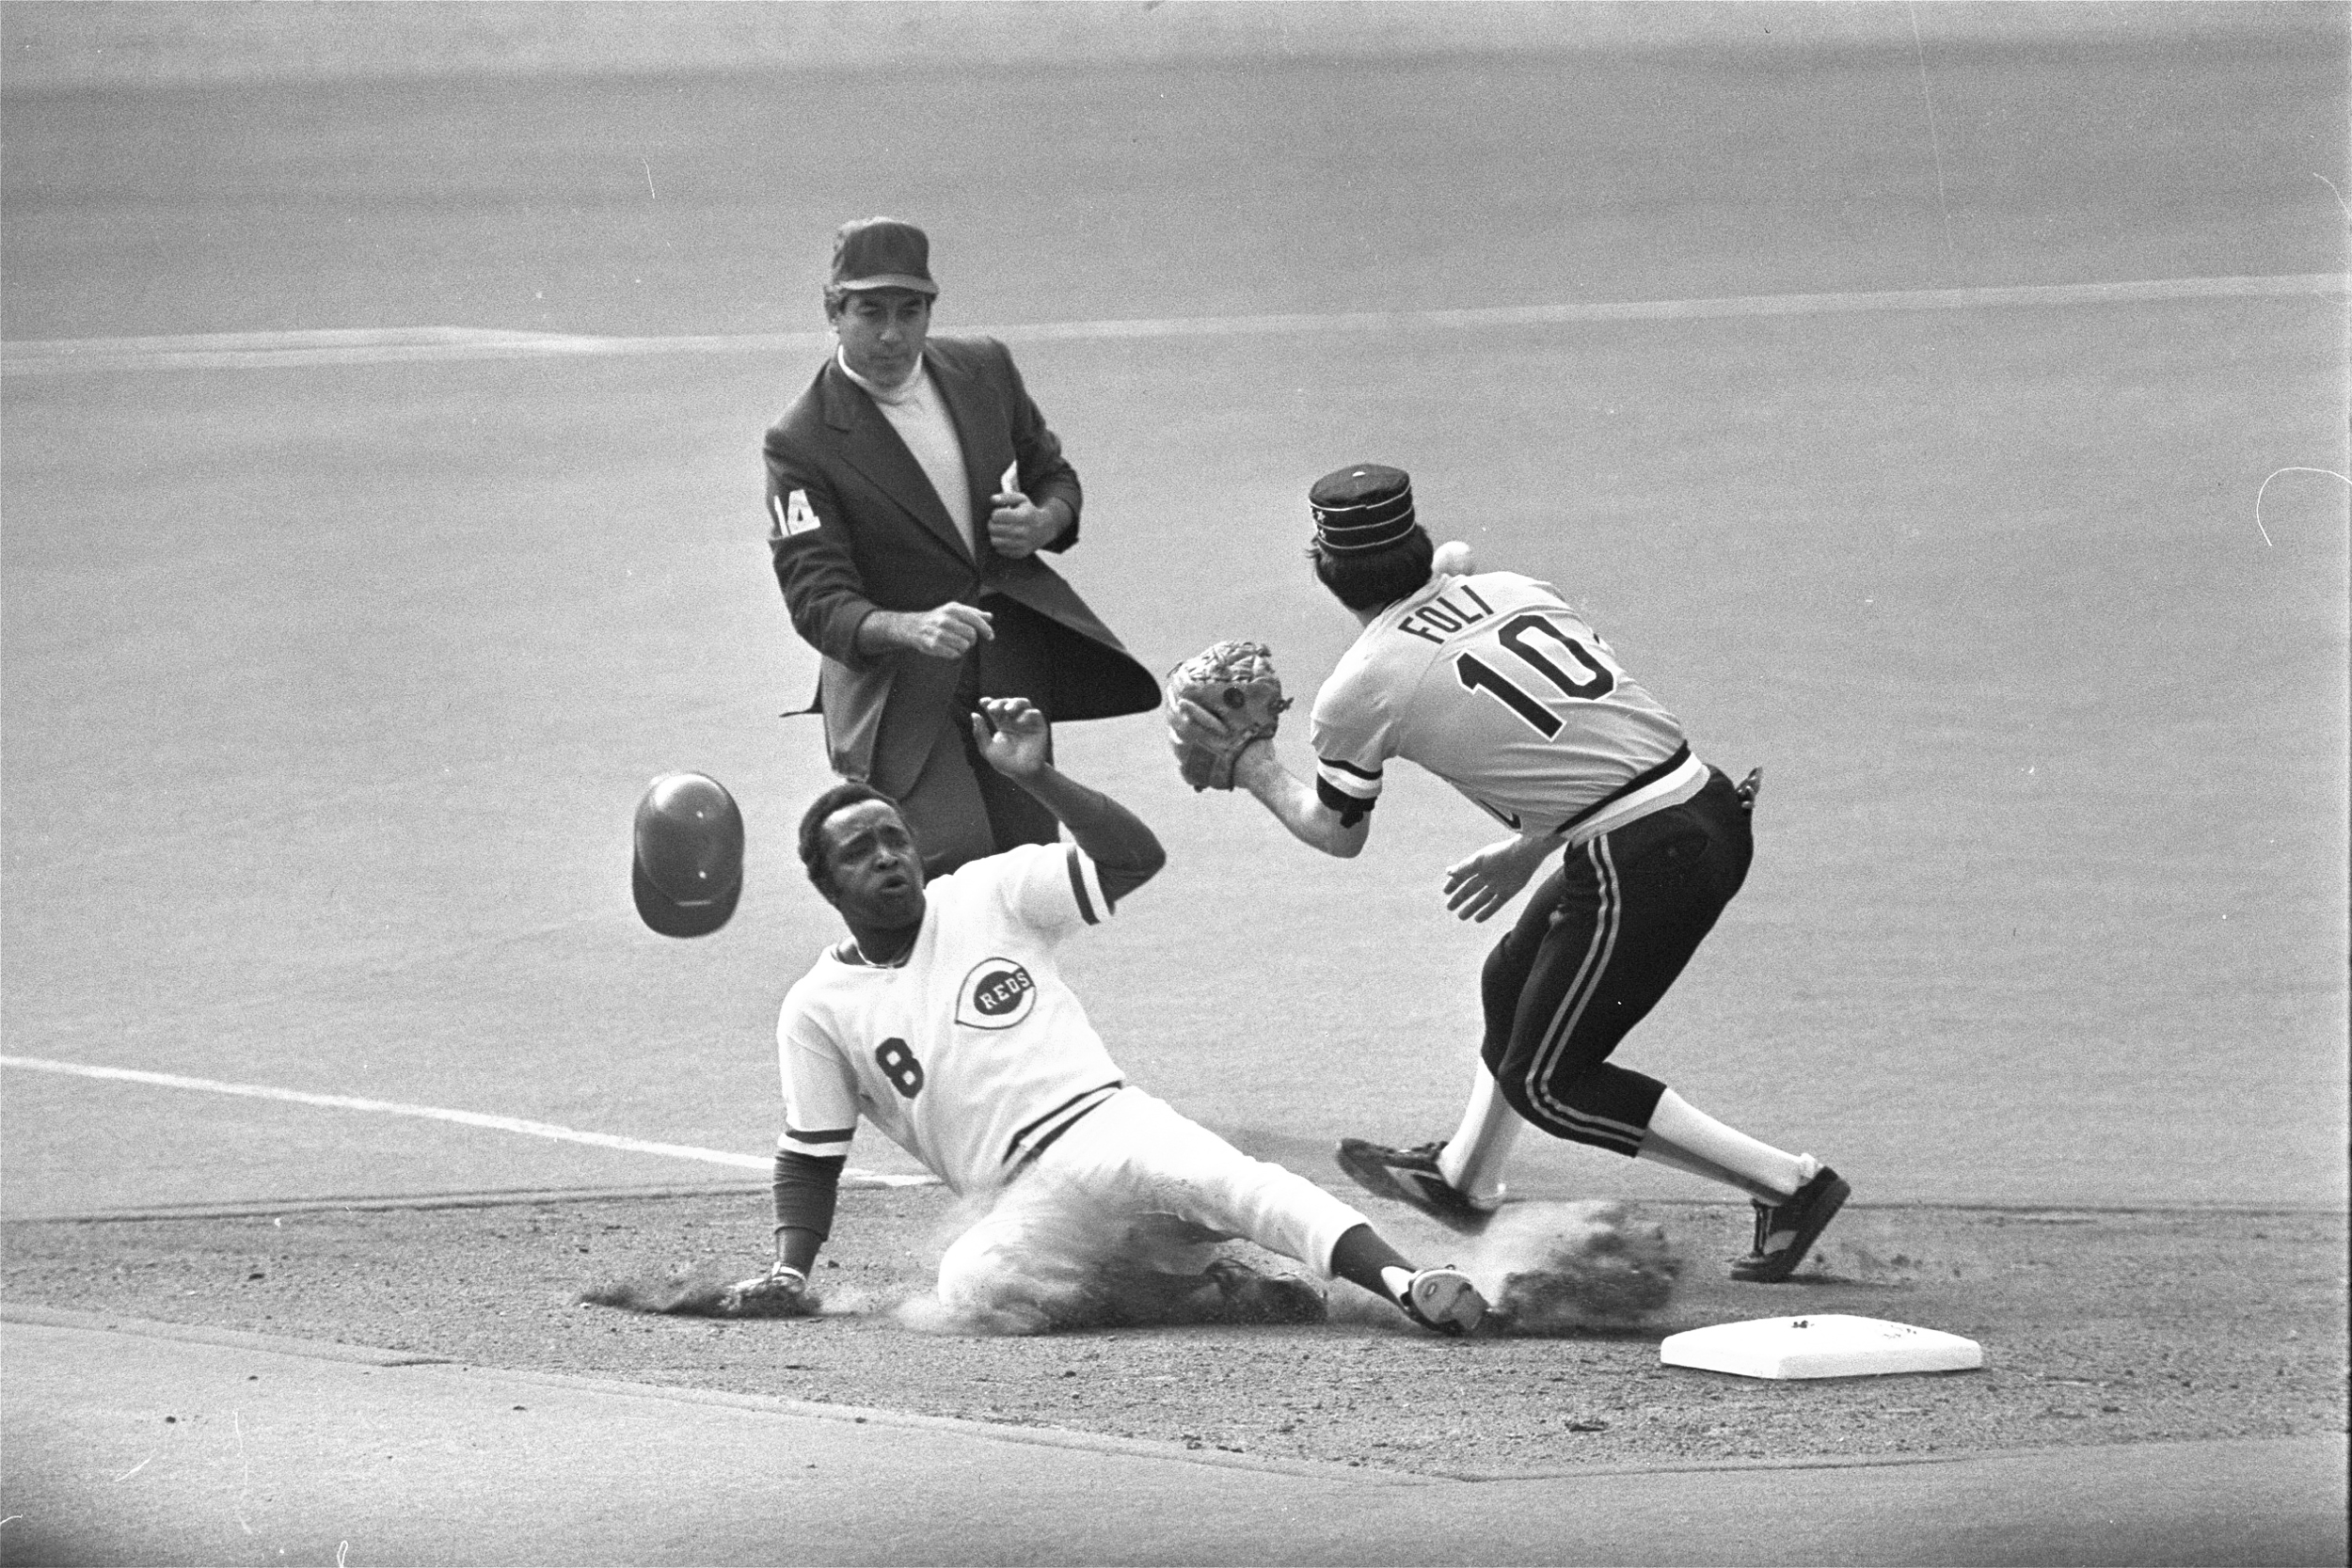 Joe Morgan Cincinnati Reds Second Baseman And Heart Of 1970s Big Red Machine Dies At 77 Spending time with the houston colt.45's/astros, cincinnati reds, philadelphia phillies, and oakland a's. https www nbcnews com news sports joe morgan cincinnati reds second baseman heart 1970s big red n1242949